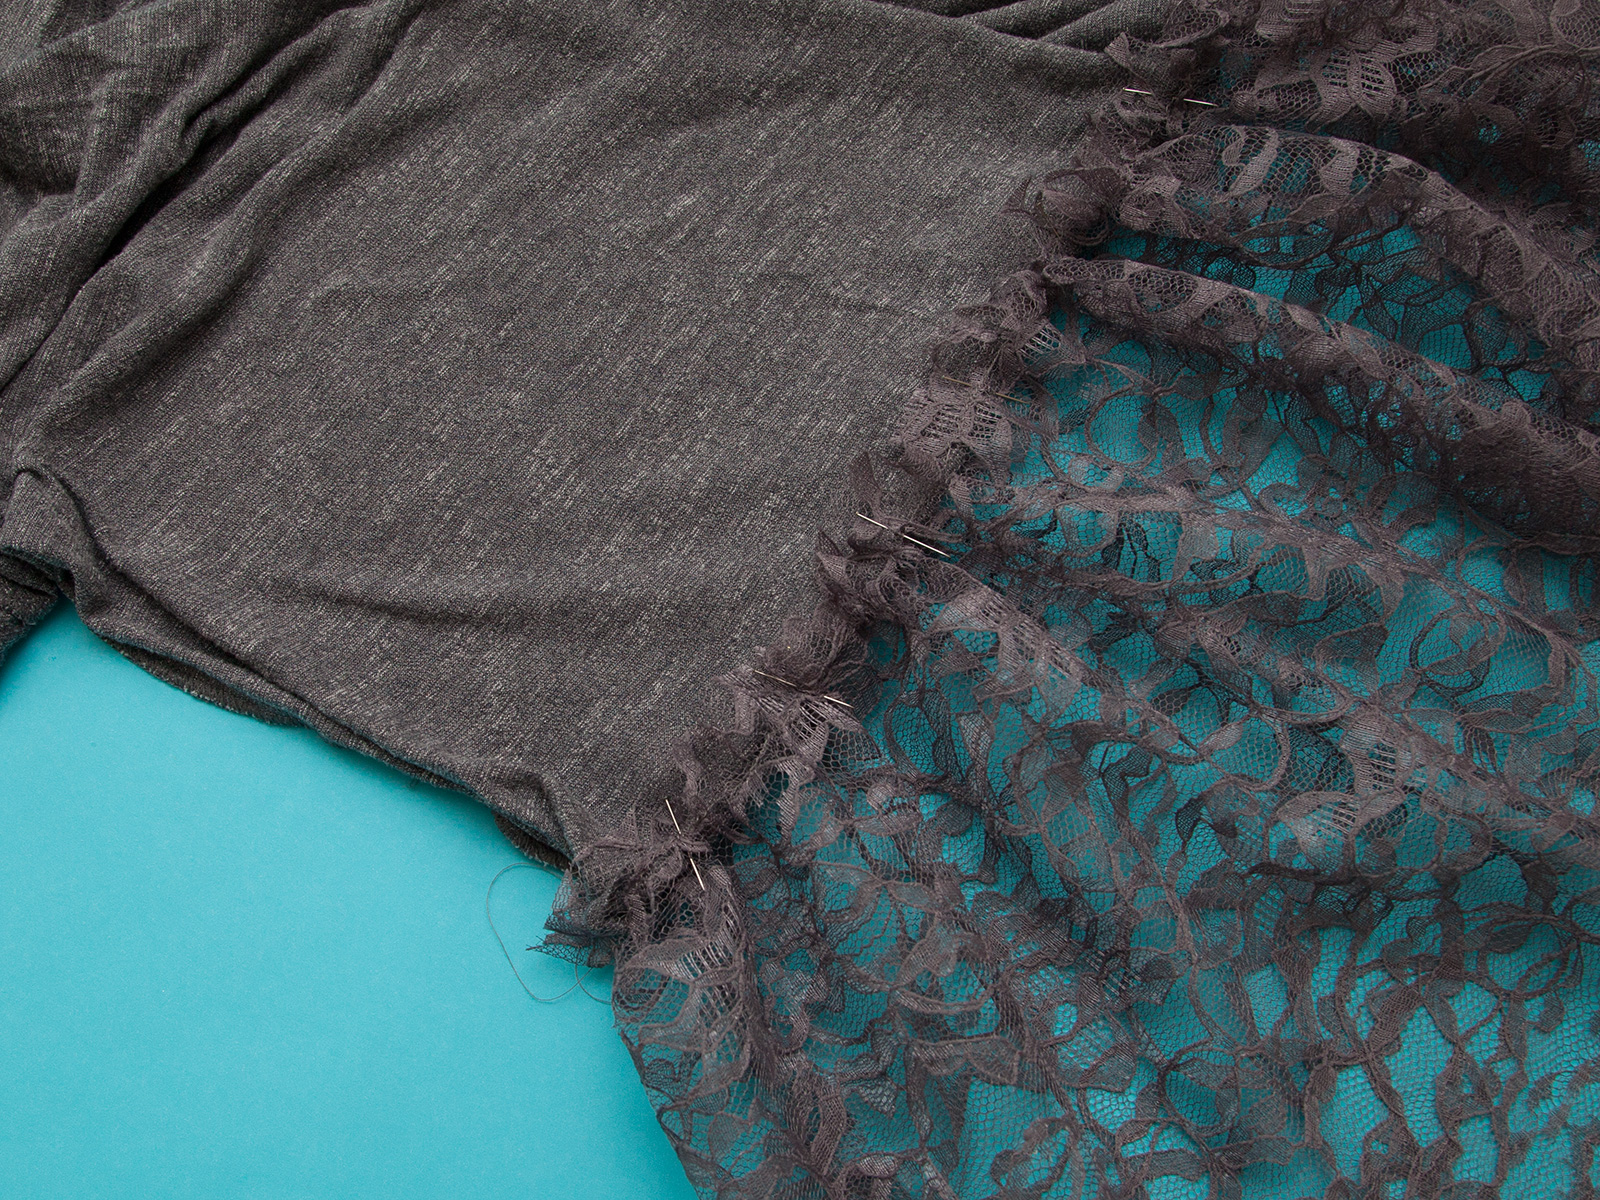 DIY Lace Edged T-Shirt pin to tee by Trinkets in Bloom